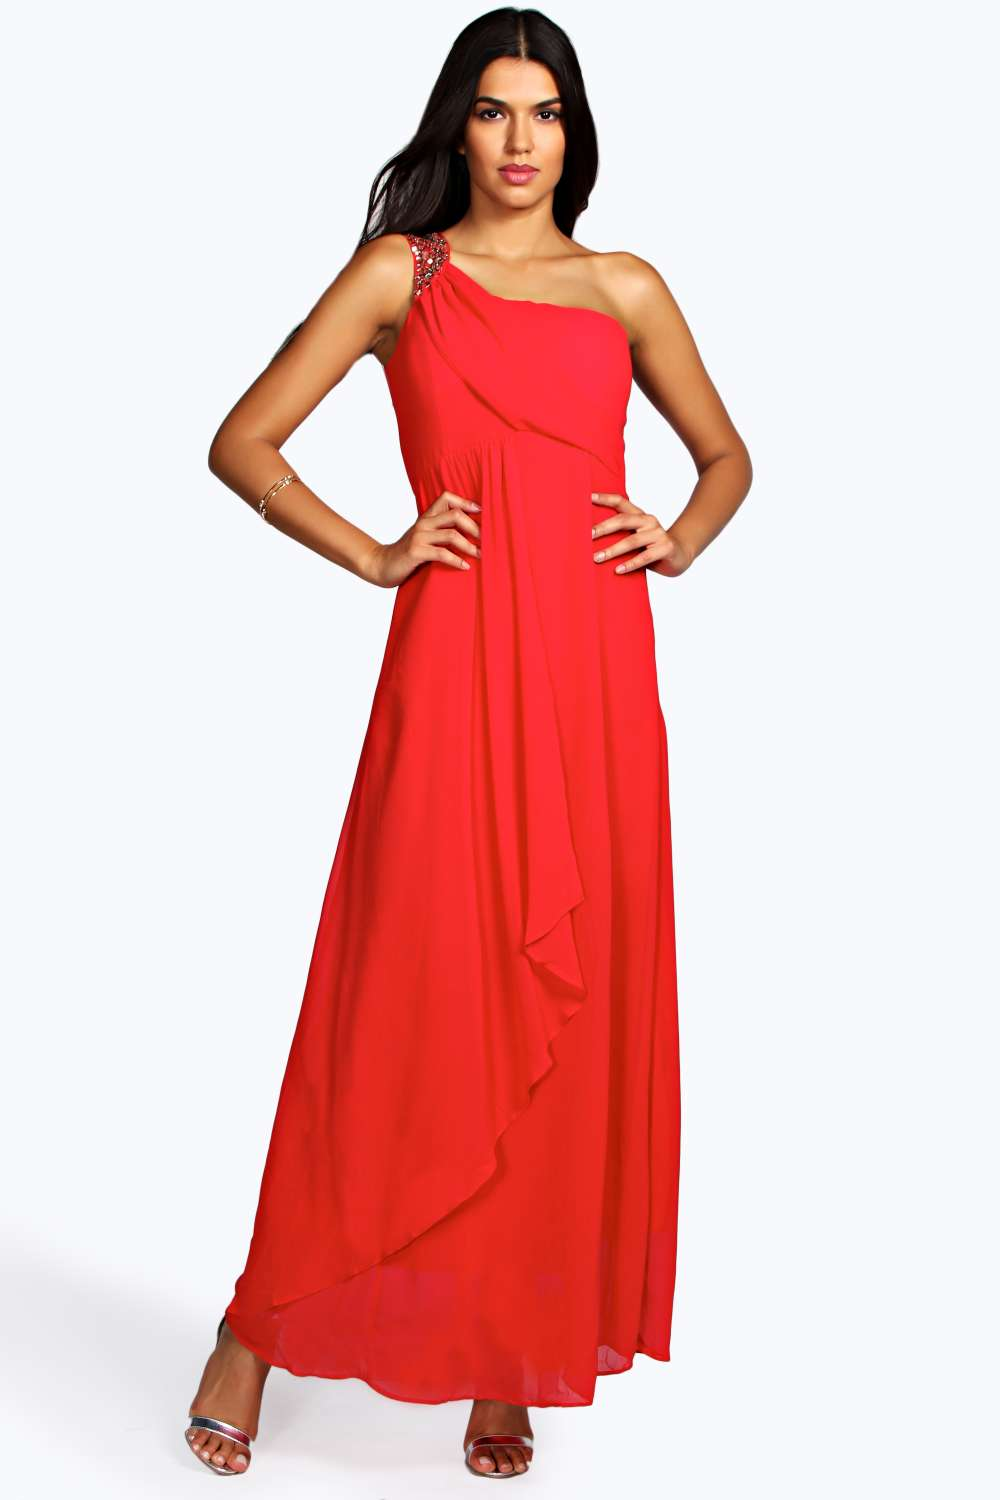 Under $100 prom dresses // www.brokeandchic.com